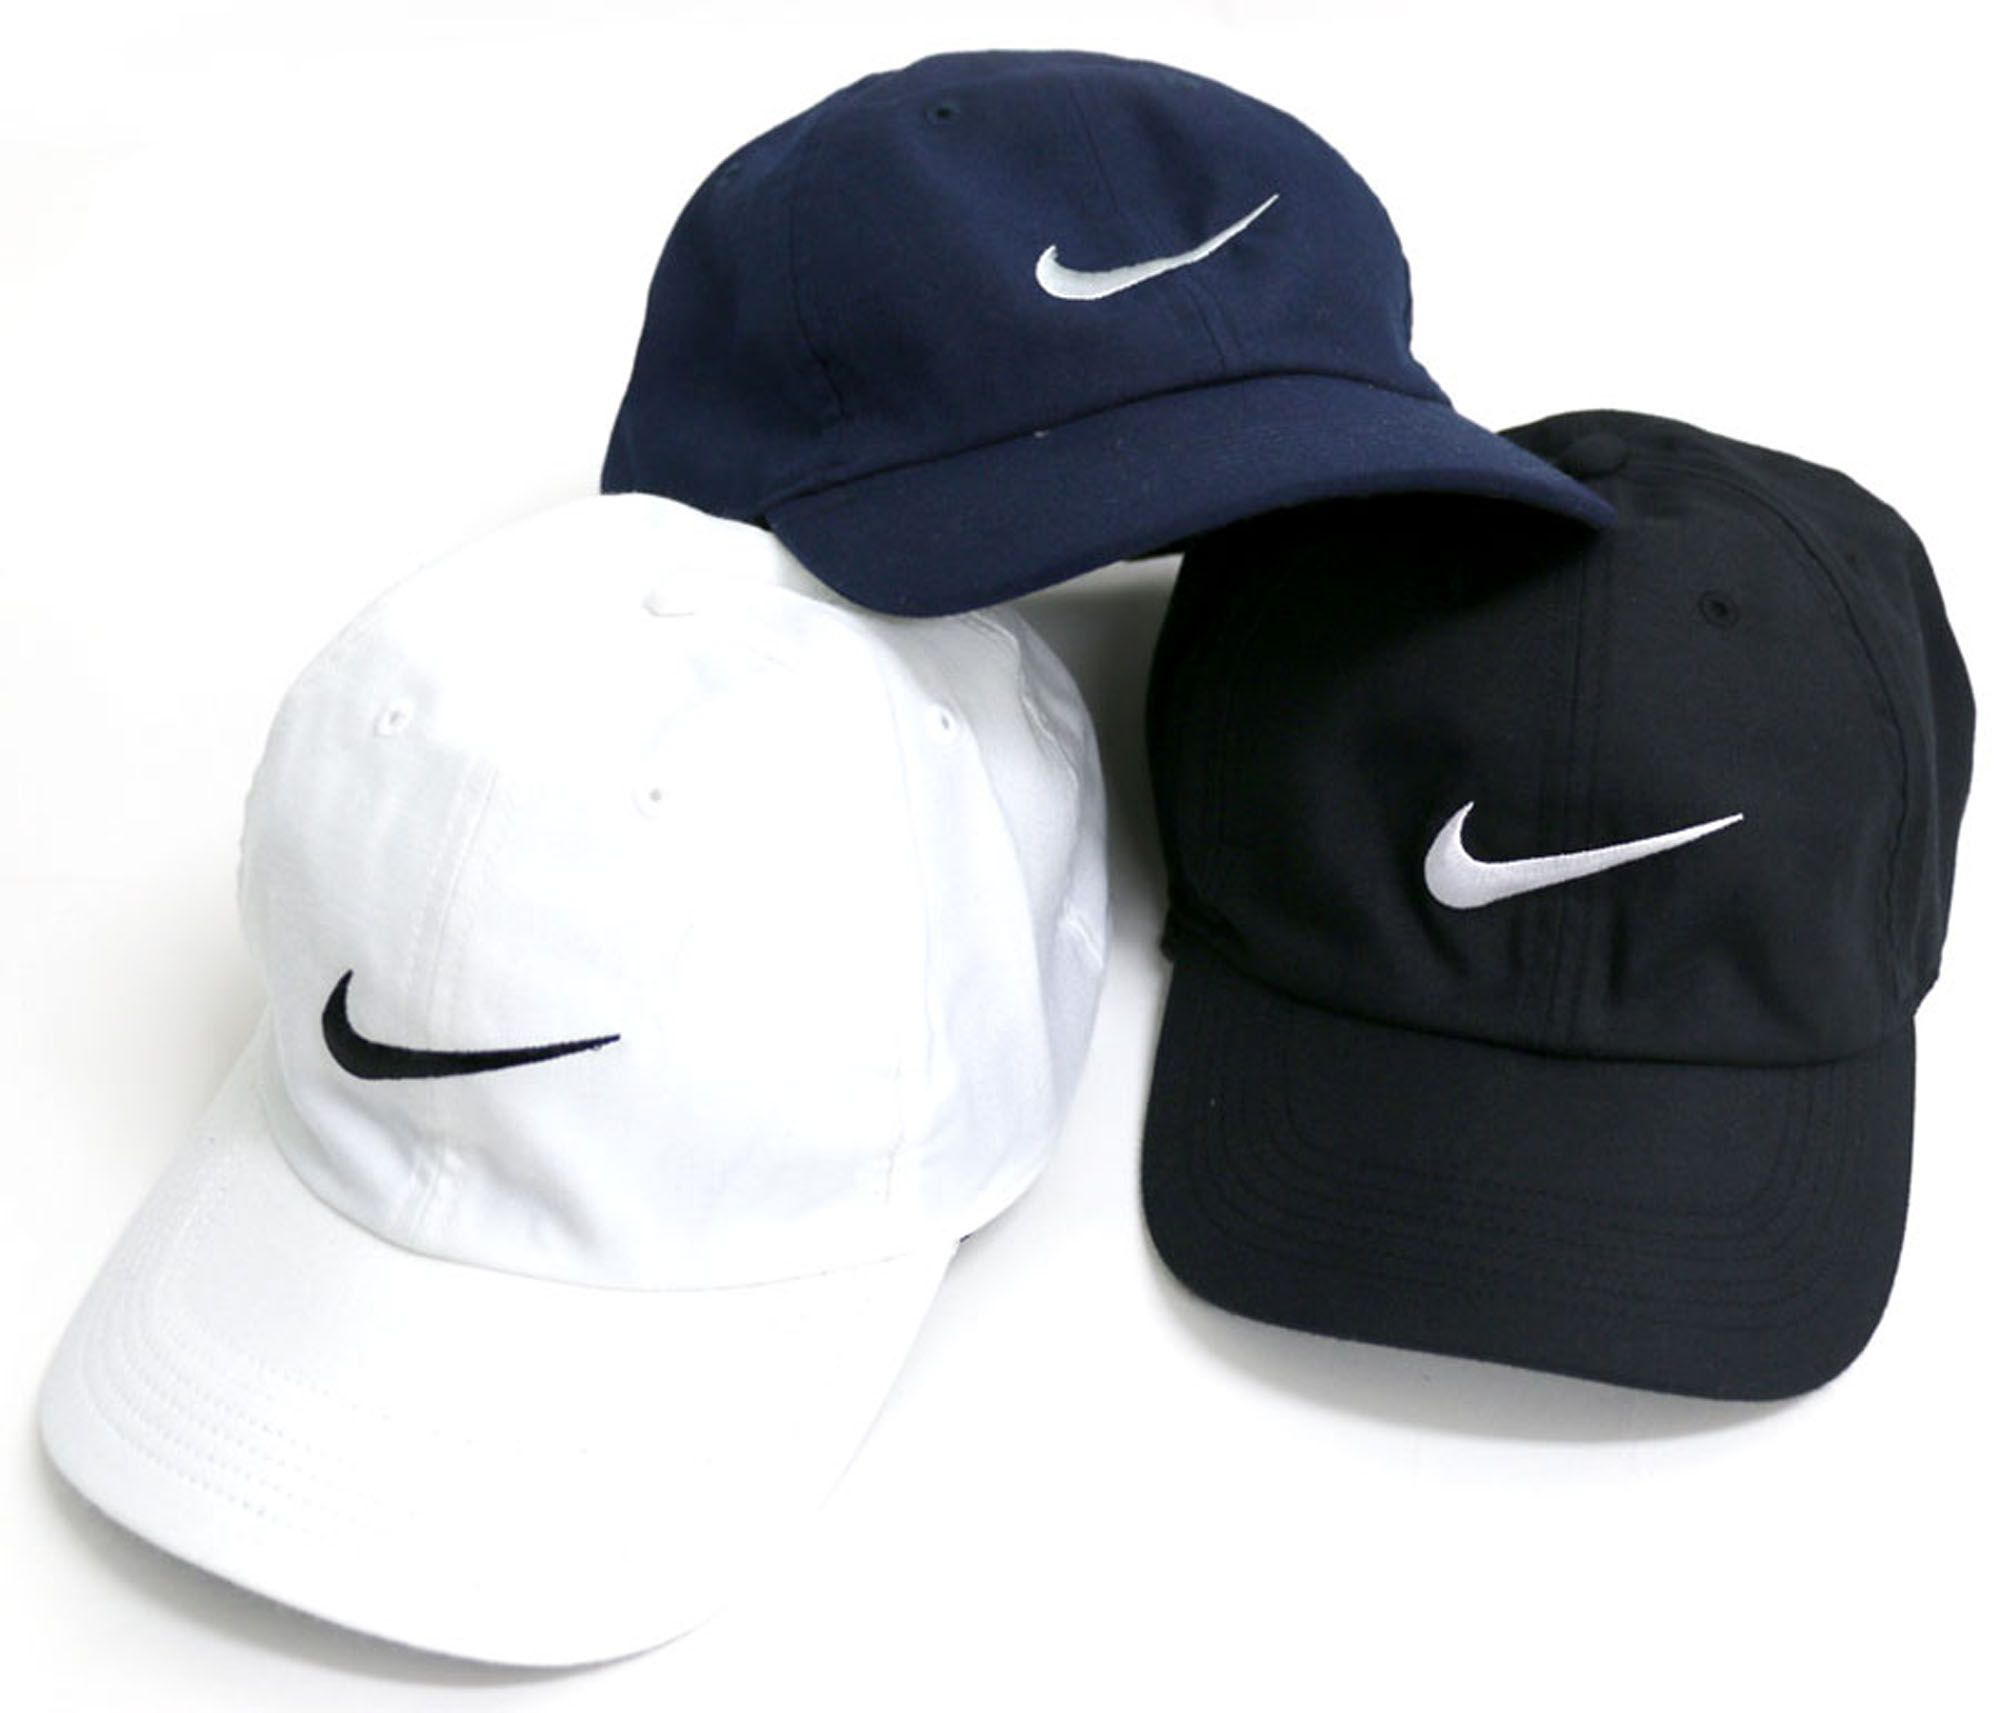 Nike Cap Executive Stylish Branded Cap For Mens Women Cricket Sports ... 0284b0a8304